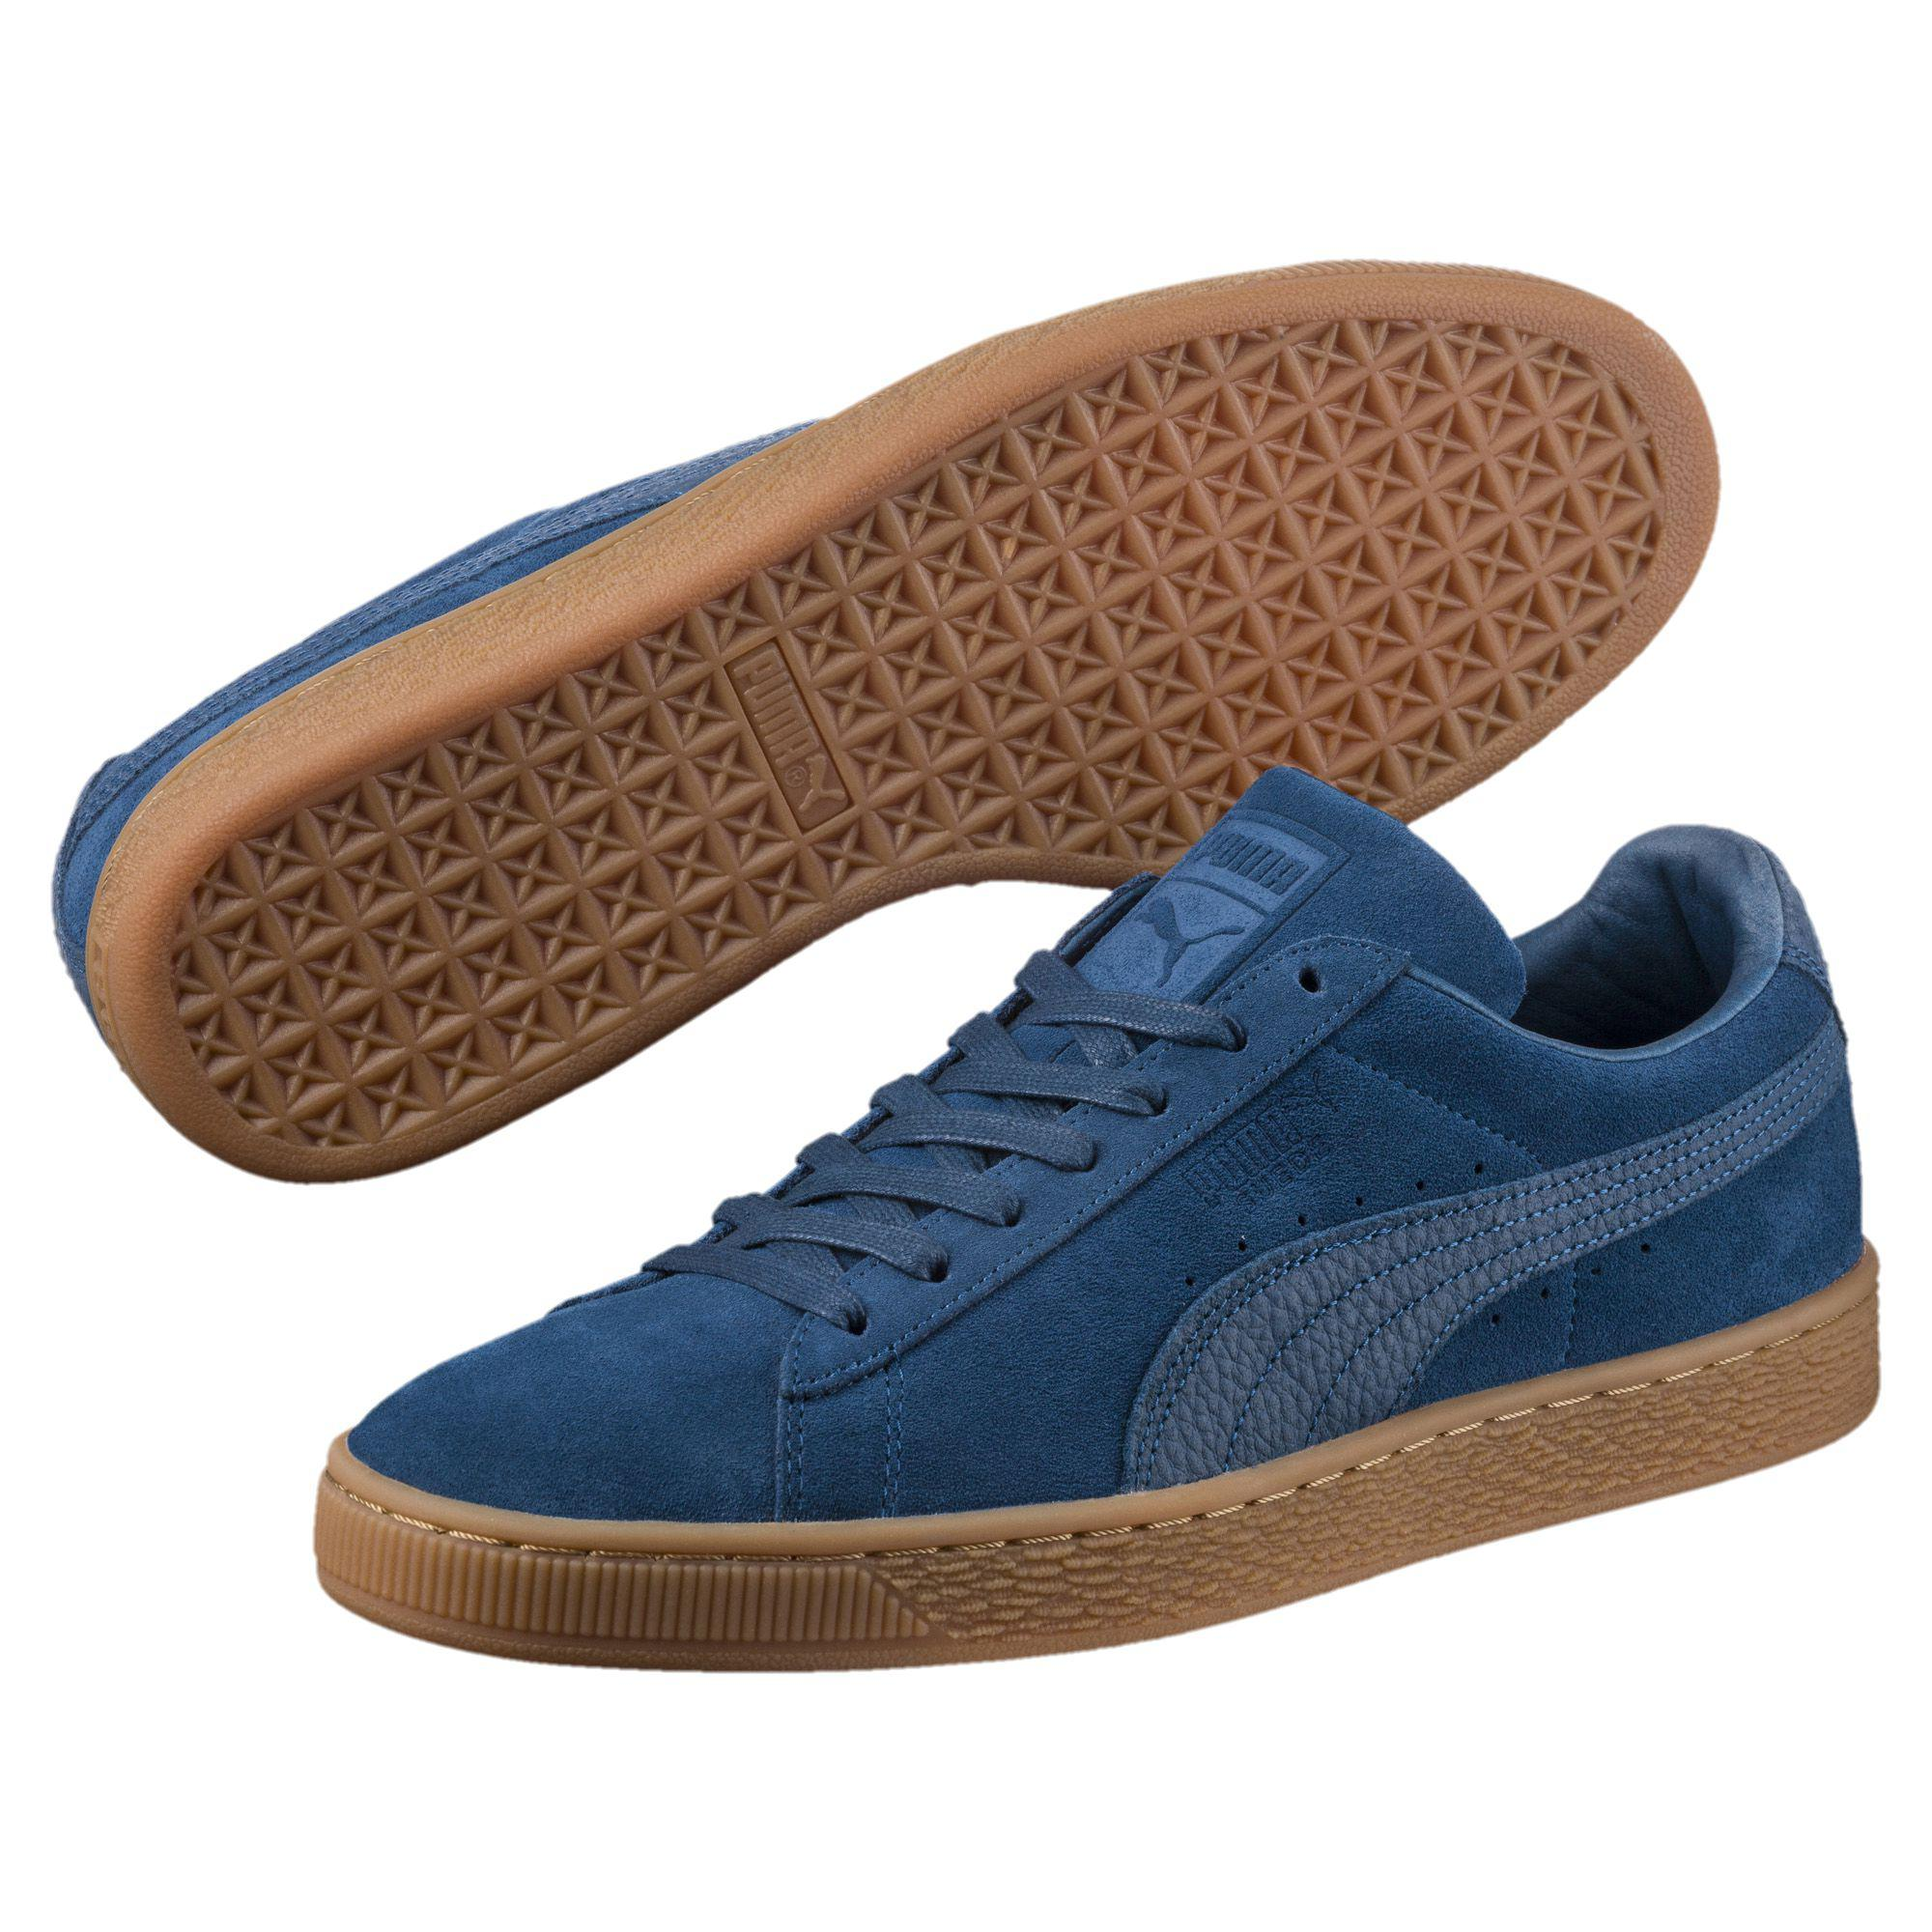 online store 9eac3 aa07a Men's Blue Suede Classic Natural Warmth Sneakers